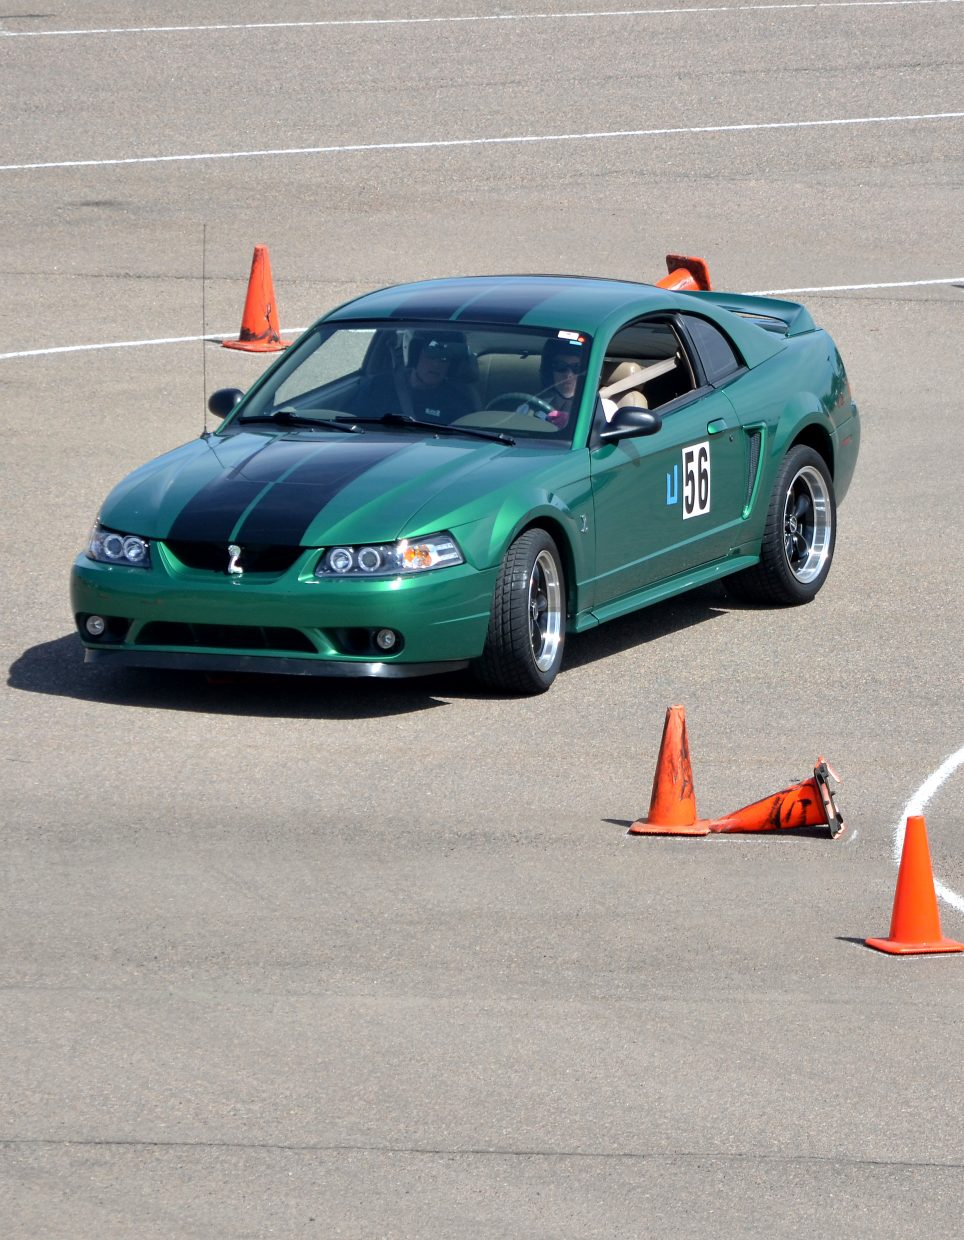 Amy Hosterman's stock 1999 SVT Cobra was one of just 2,400 made, including a hand-built motor.